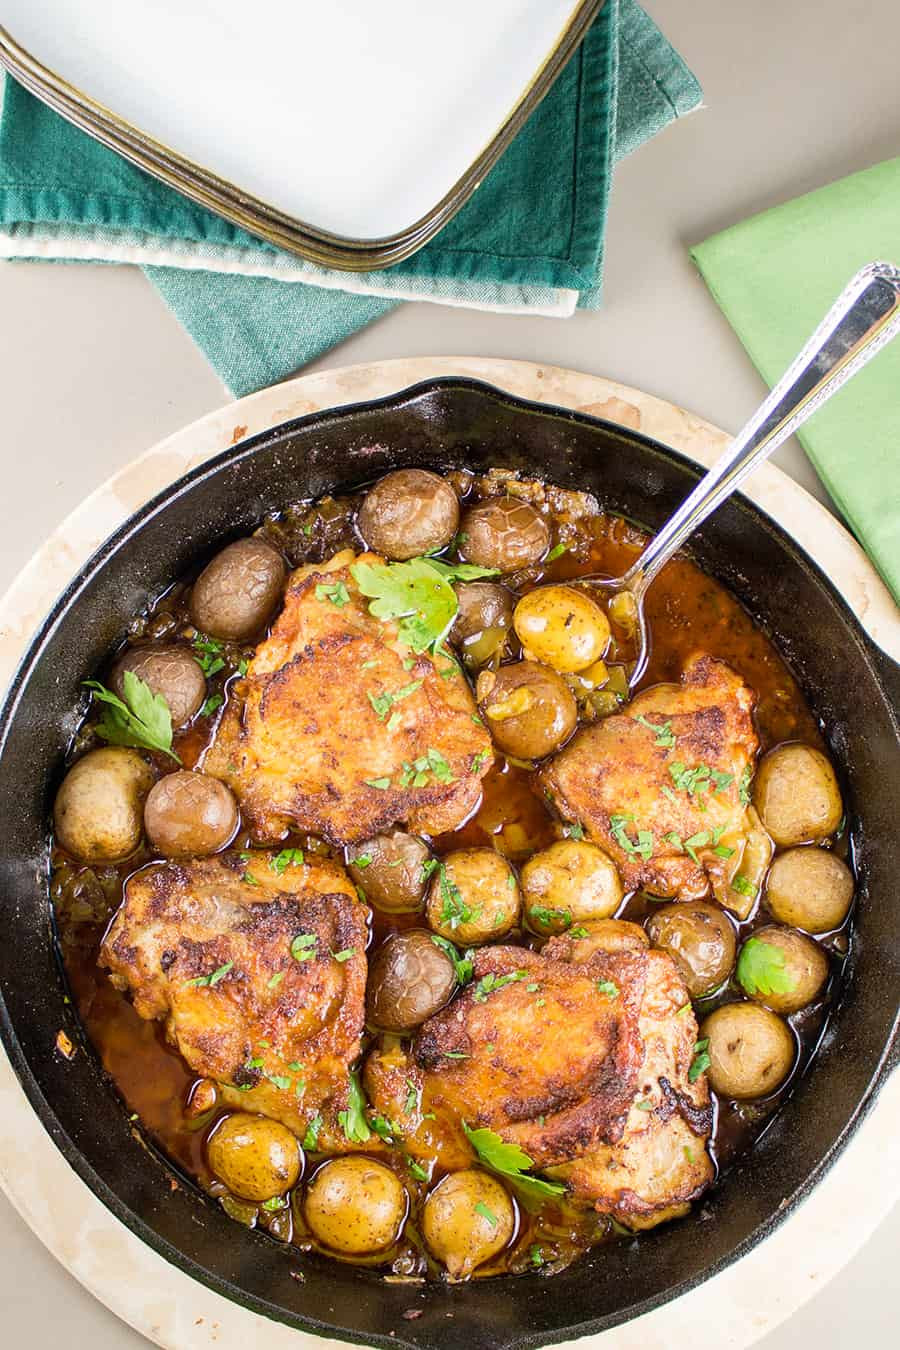 Chicken Thighs Chili  Cajun Baked Chicken Thighs Recipe Chili Pepper Madness